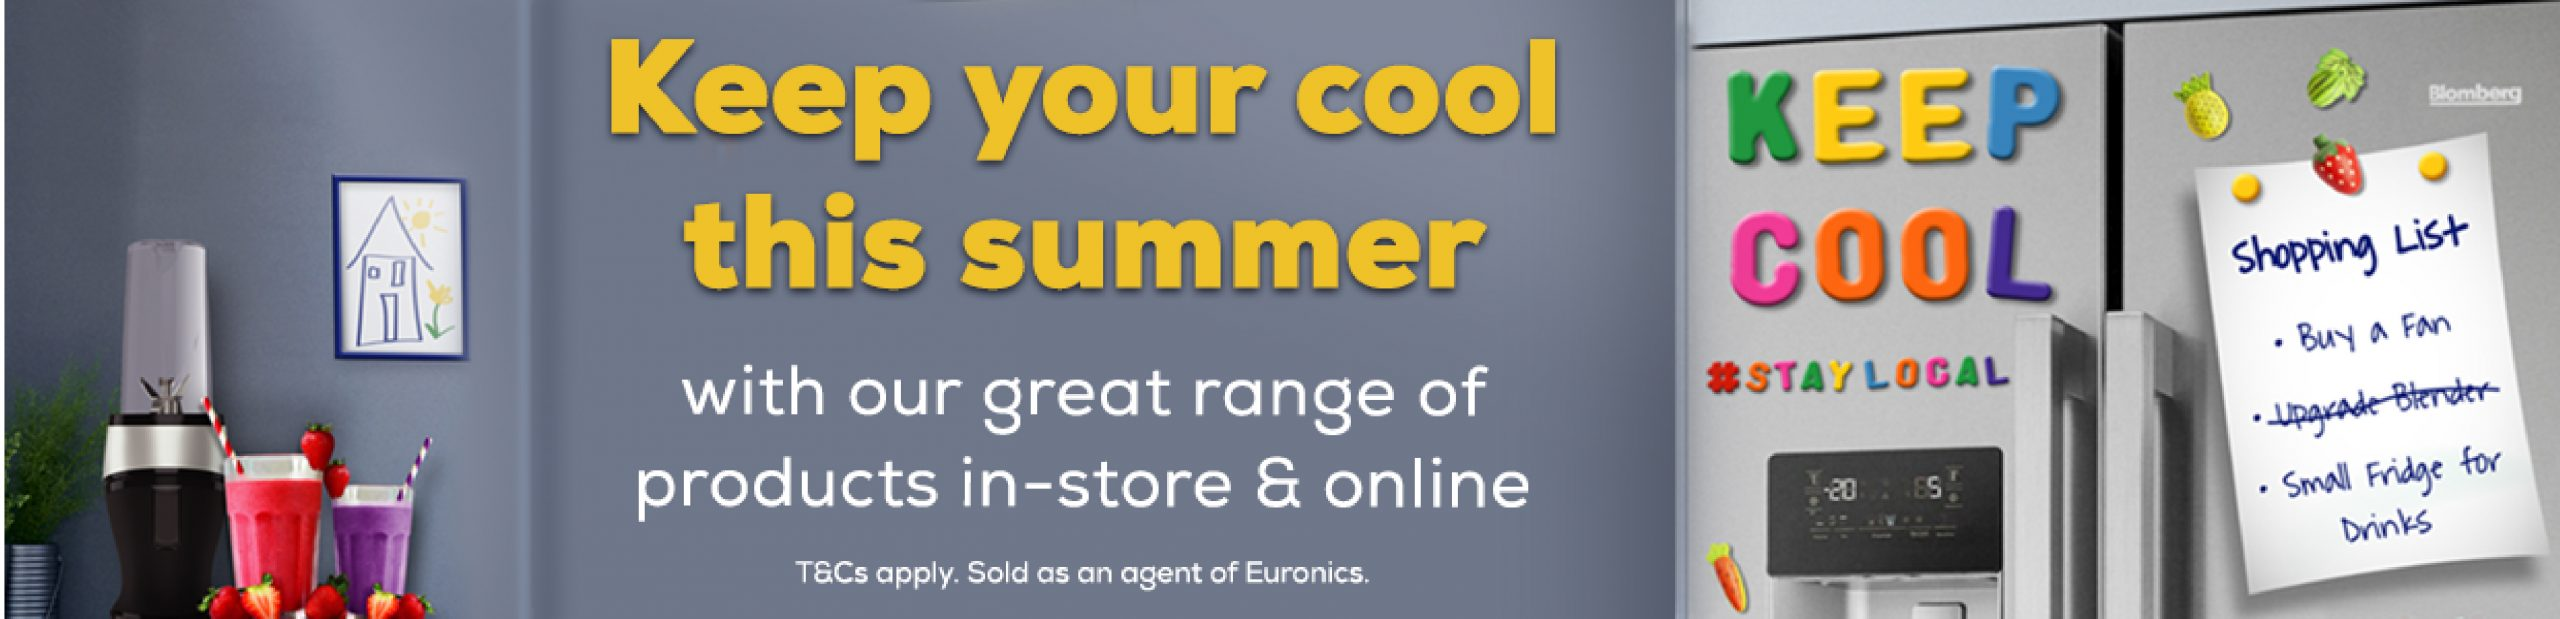 Keep Cool Promotion